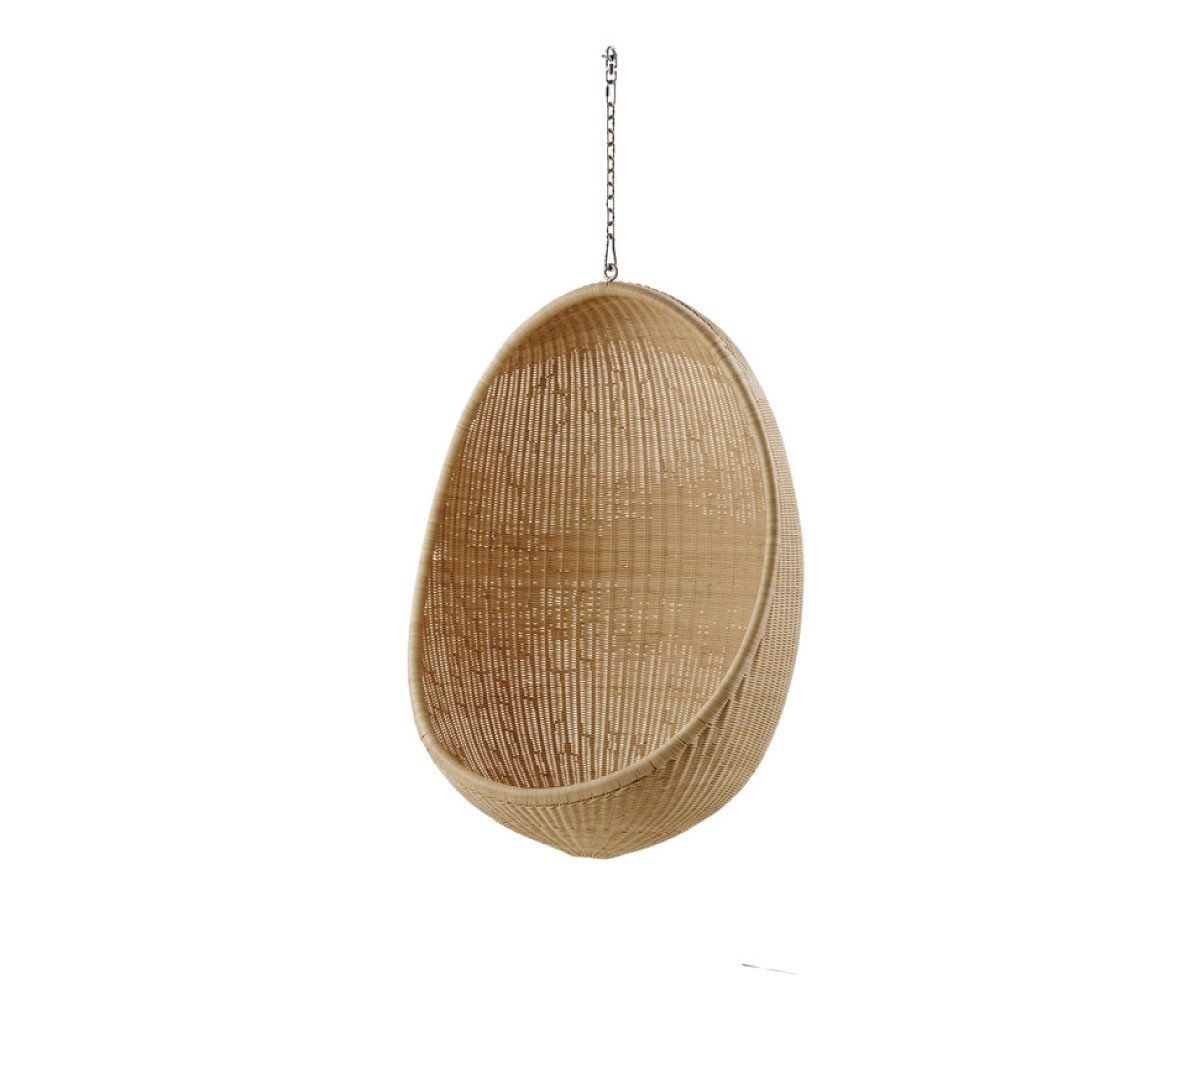 Egg Shaped Wicker Chair Design Chair By Sika Design Luxury Interior Design